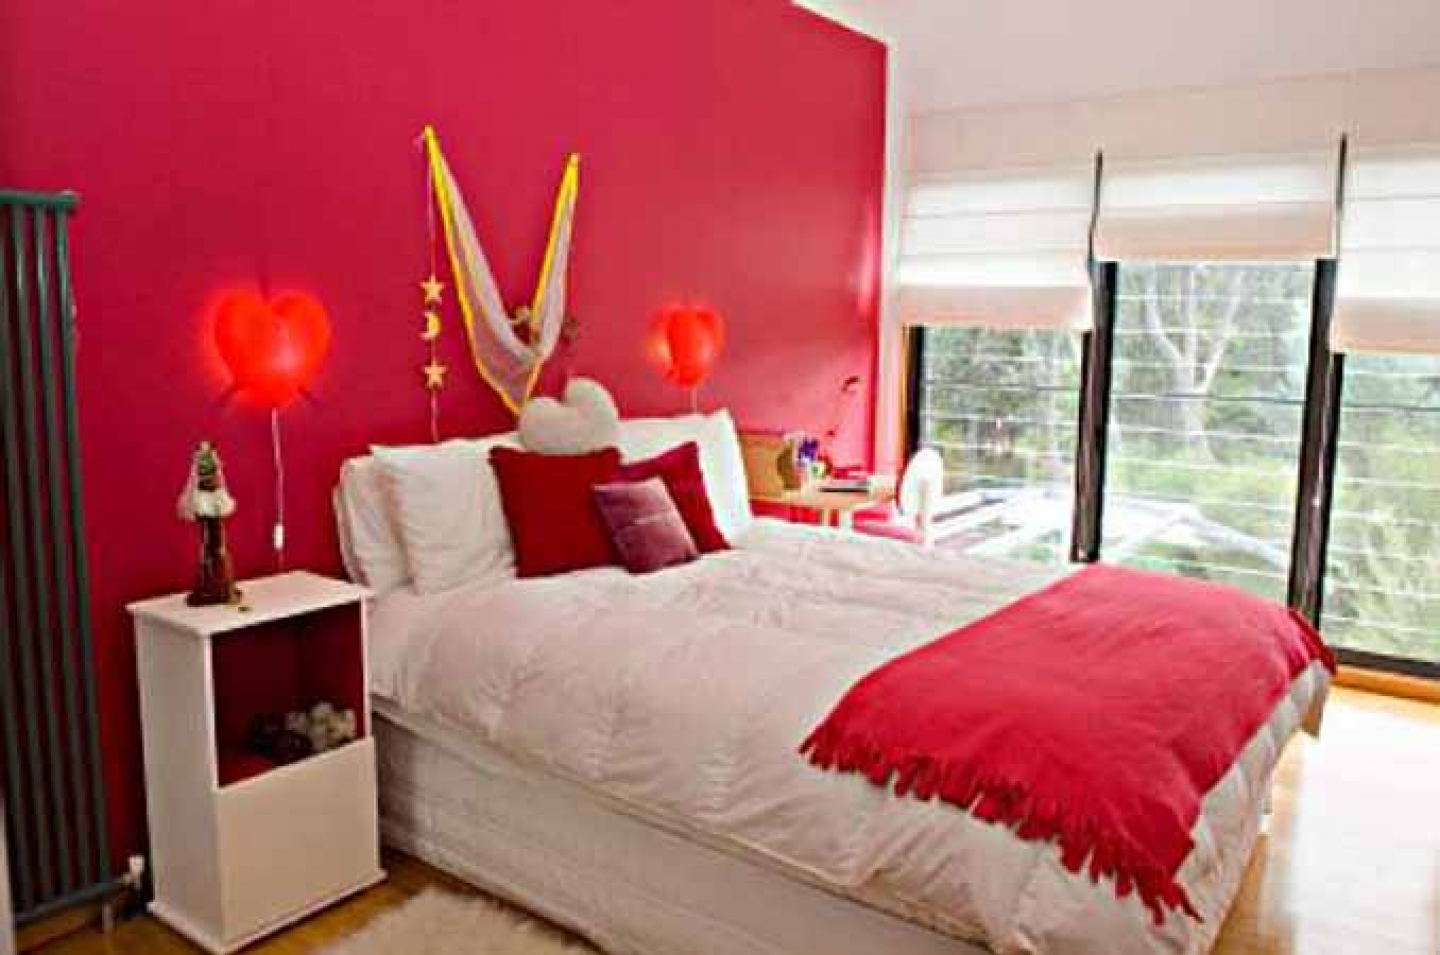 Bedroom decorating ideas red - 20 Modern Bedroom Designs Showing Glamorous Decorating Ideas